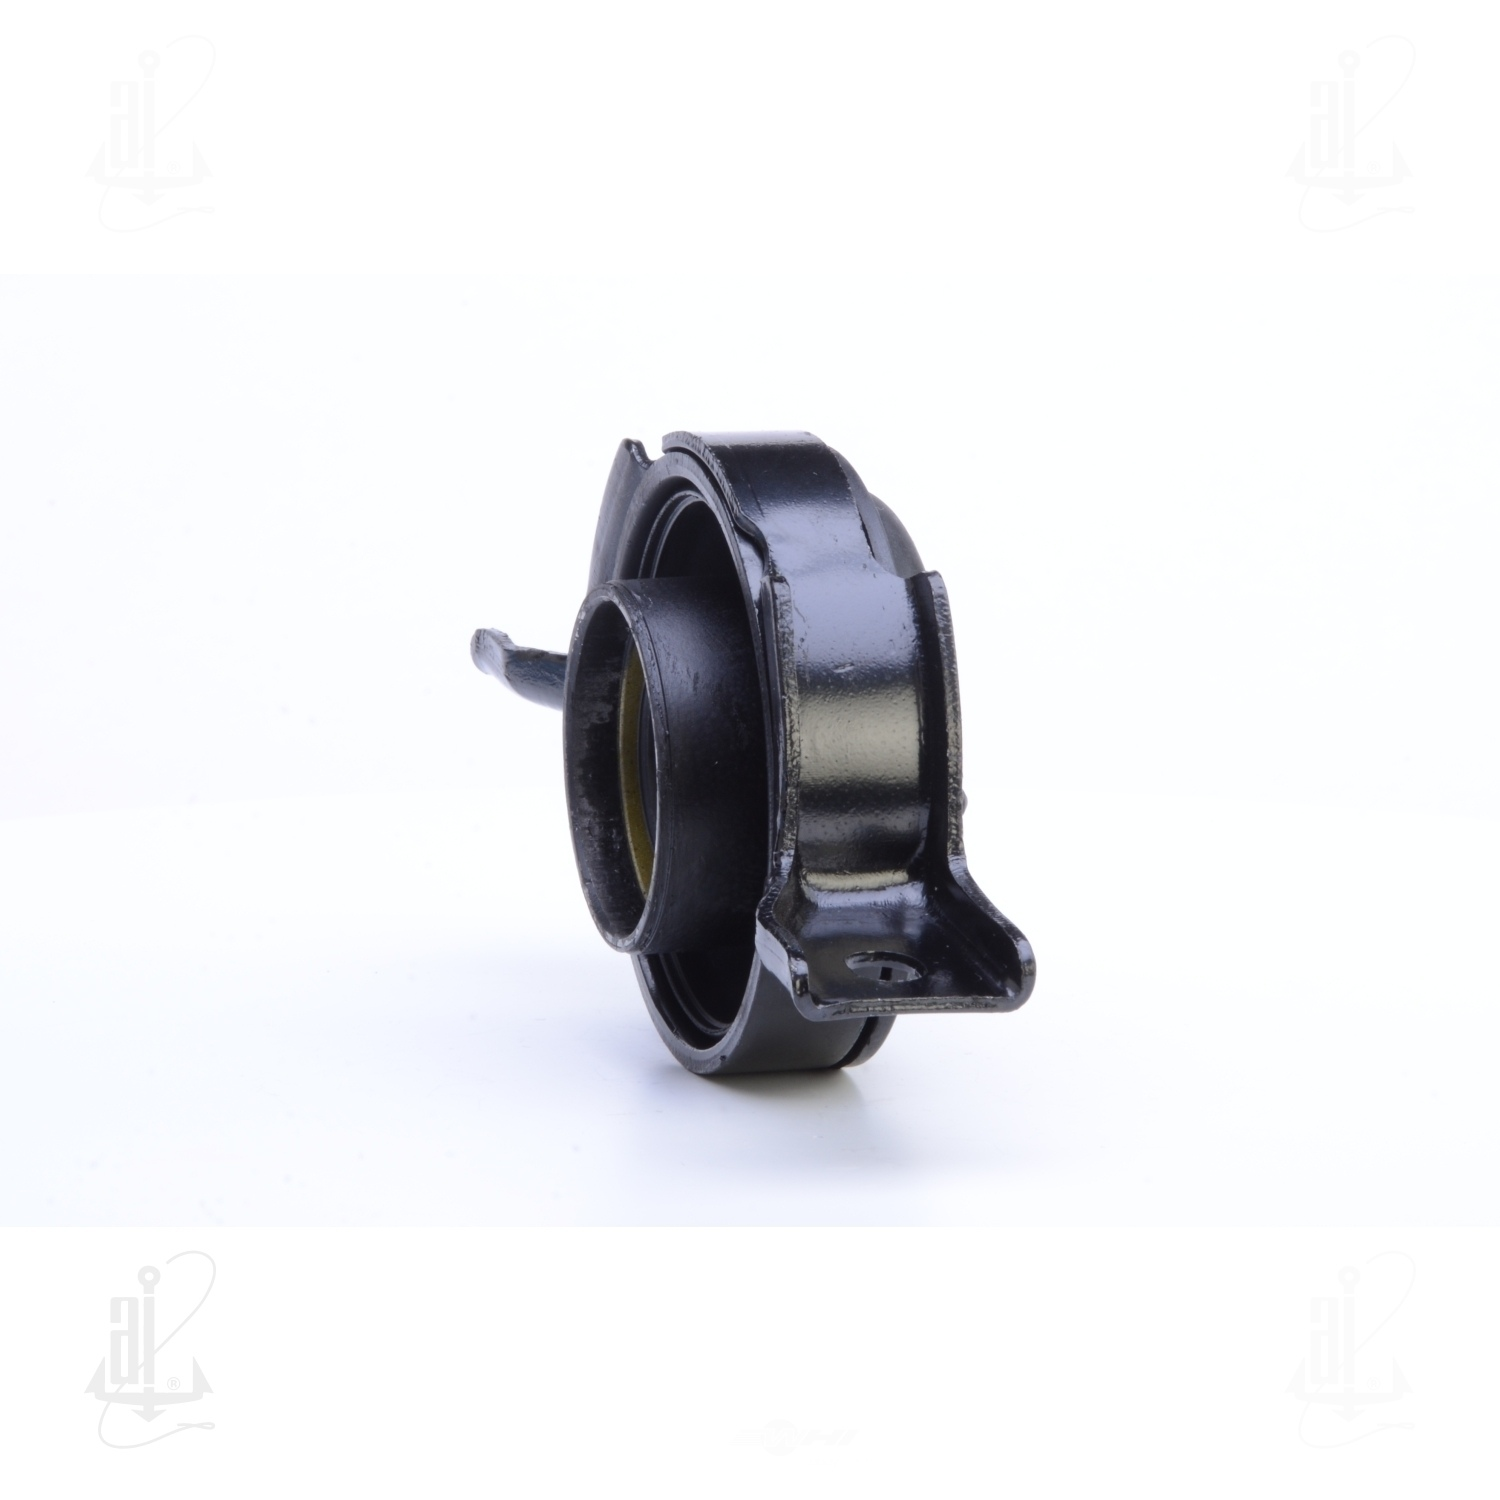 ANCHOR - Drive Shaft Center Support Bearing - ANH 6069